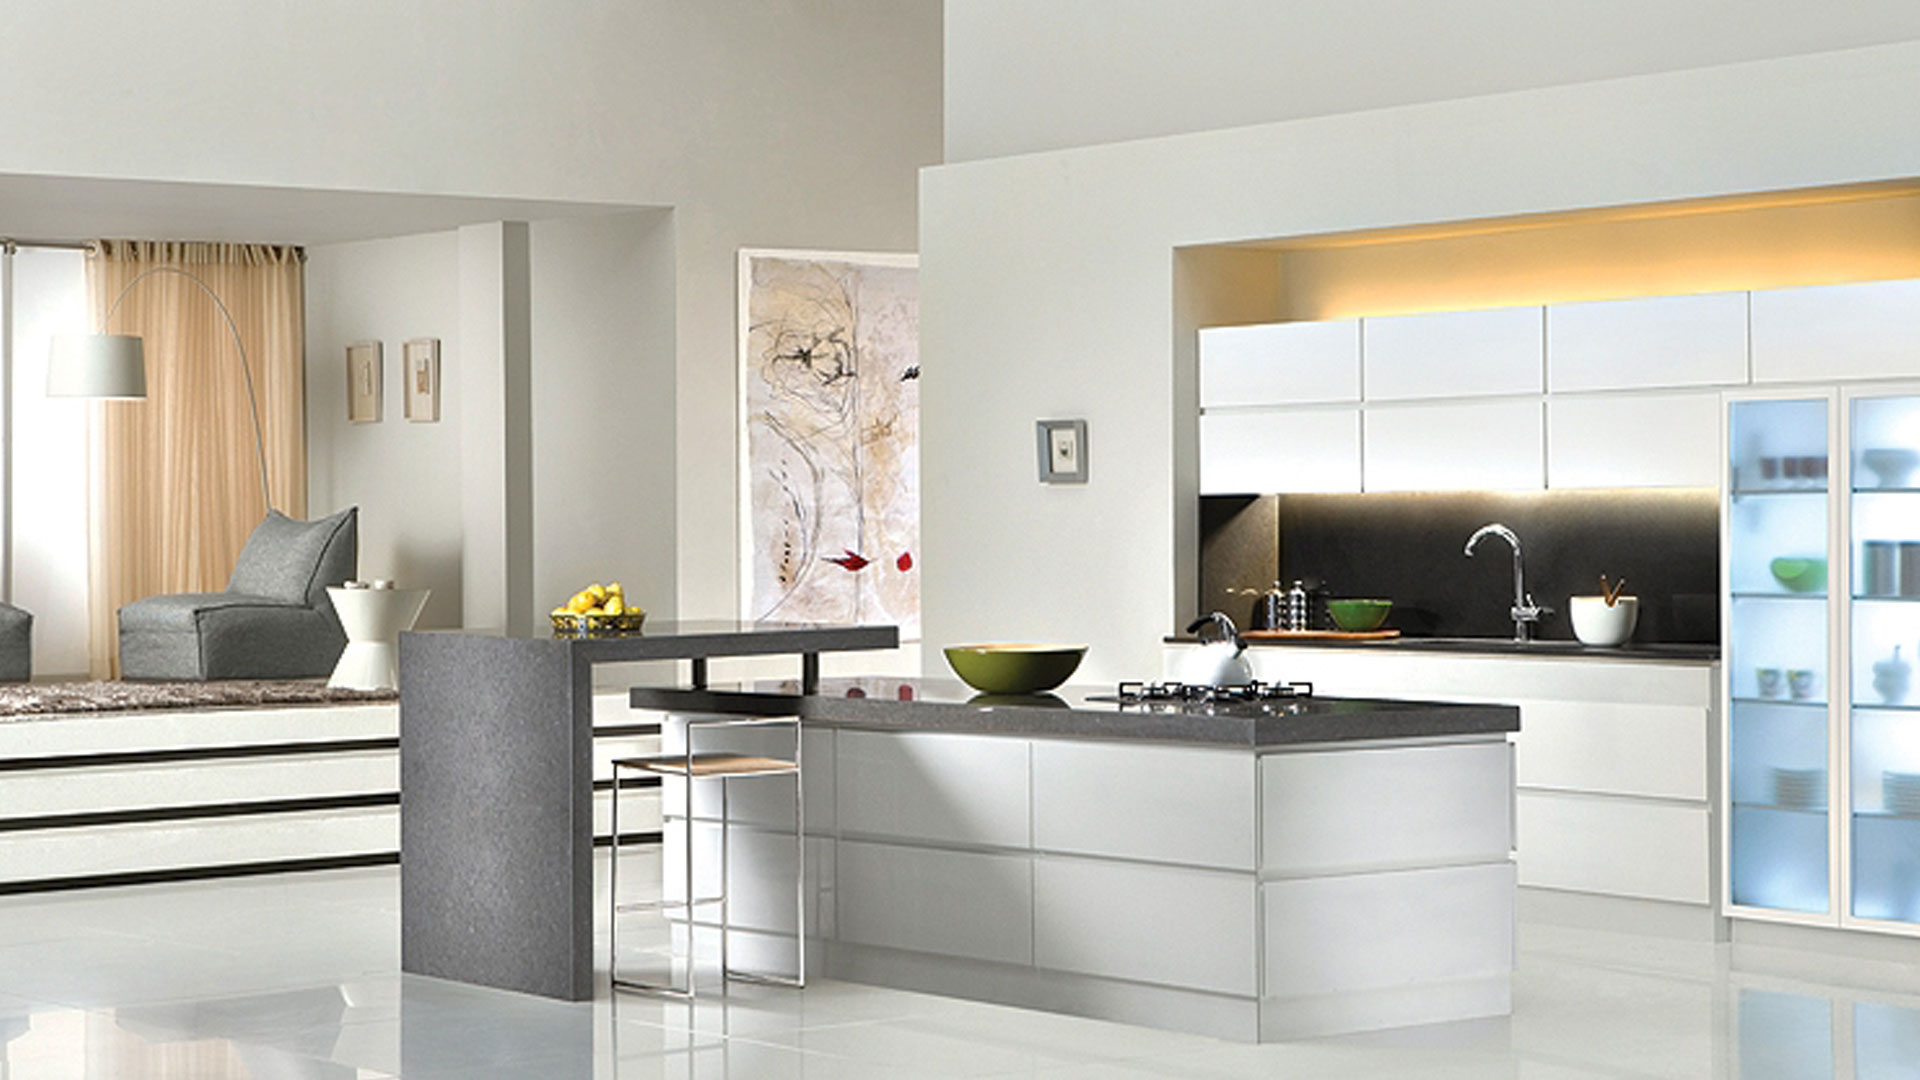 Kitchen designing is looking very exciting in 2013 as many designing